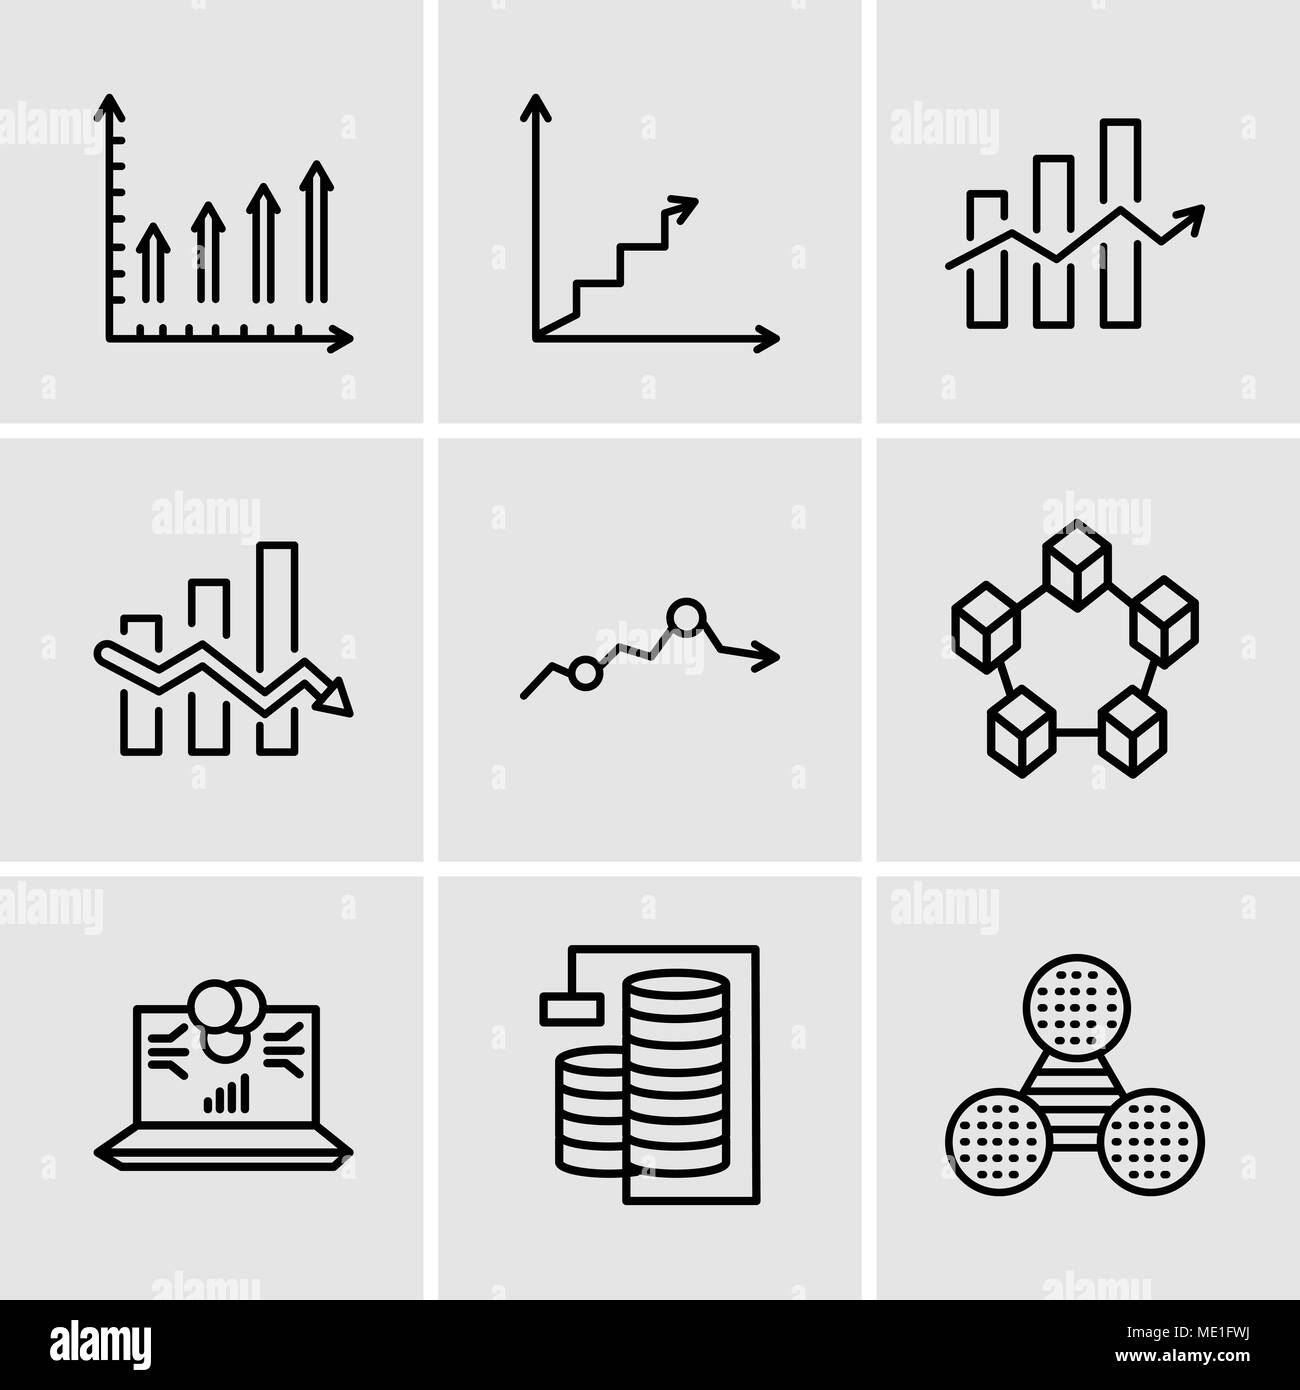 Set Of 9 simple editable icons such as Pie graphic comparison, Database Analysis, Laptop data analytics on screen with circles, Data interconnected, M - Stock Image